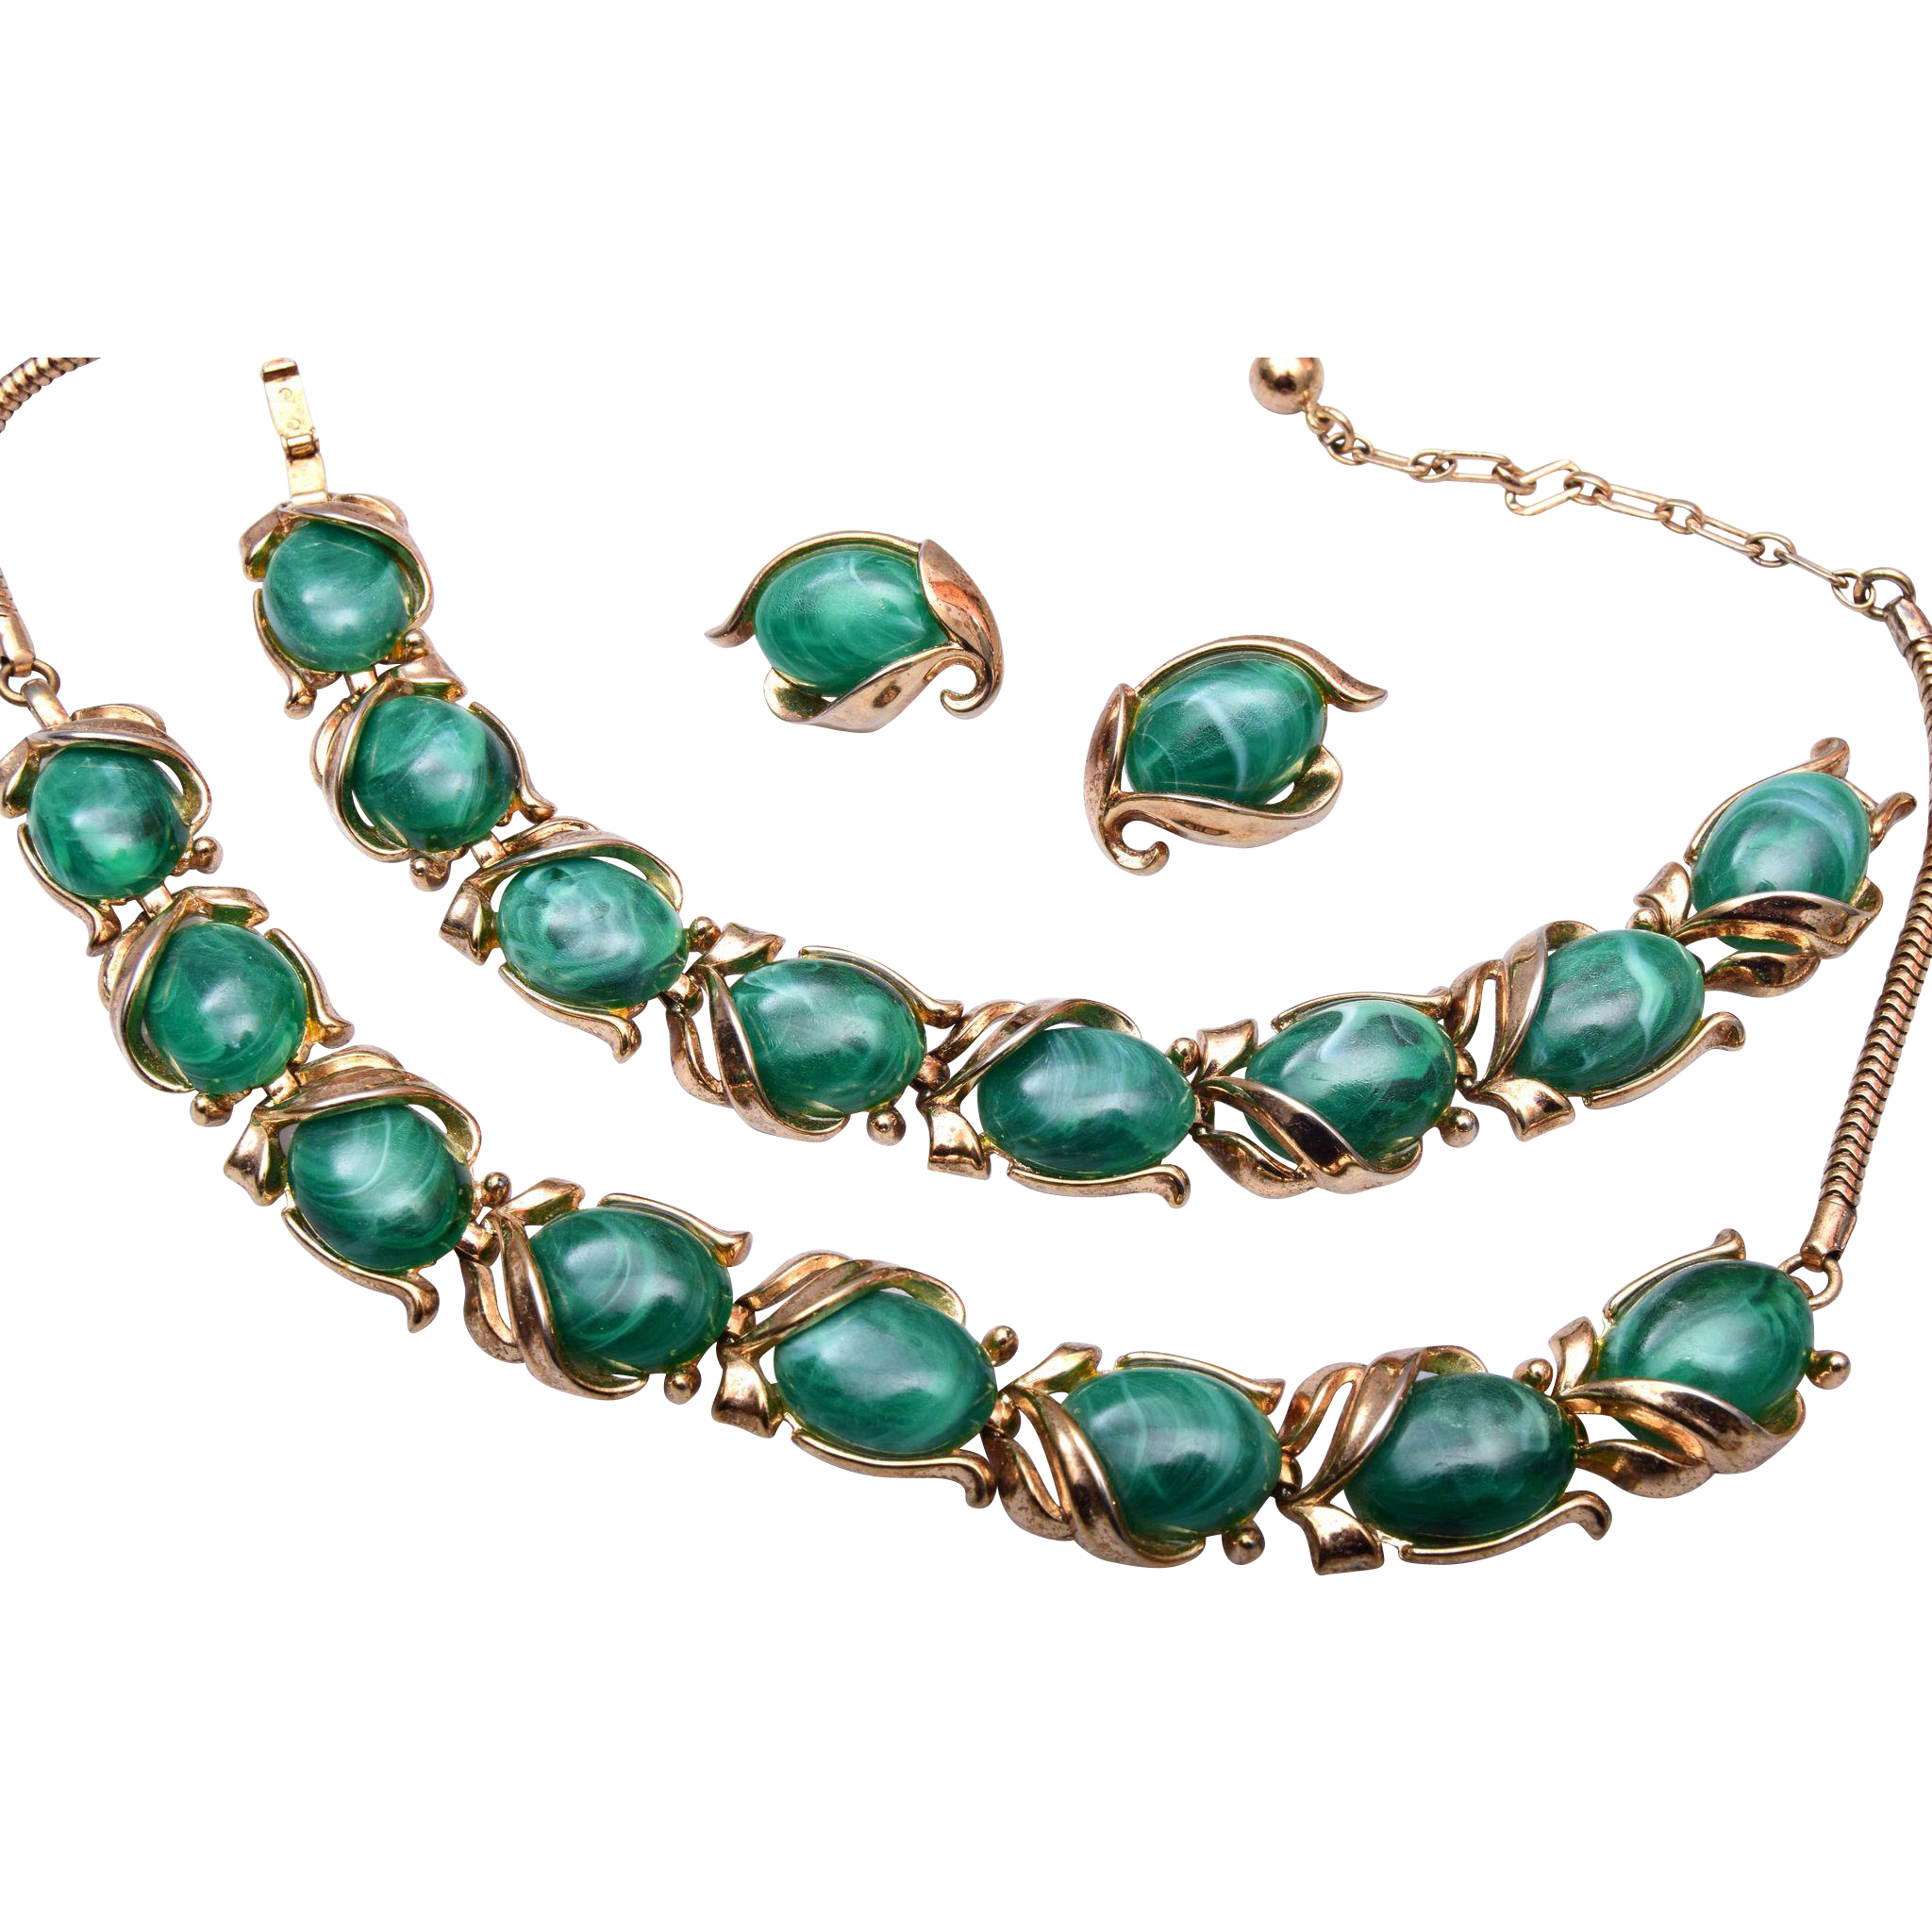 Green Crown Trifari Necklace, Bracelet and Earring Set